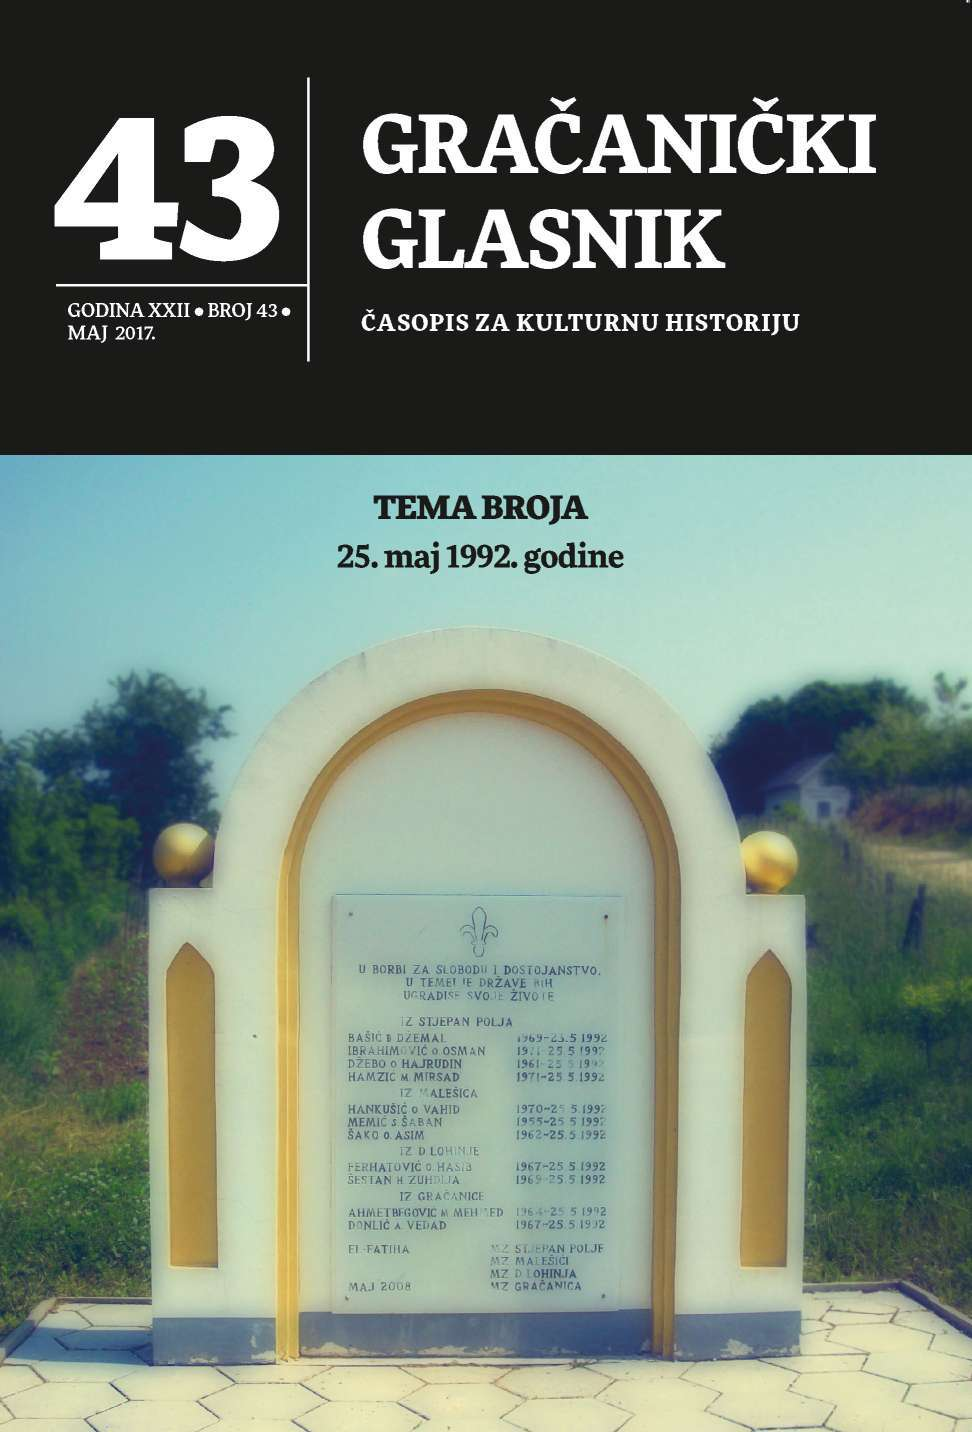 They Gave their Lives for Bosnia (Zmaj Od Bosne, Br. 38, 26. V. 1993.) Cover Image